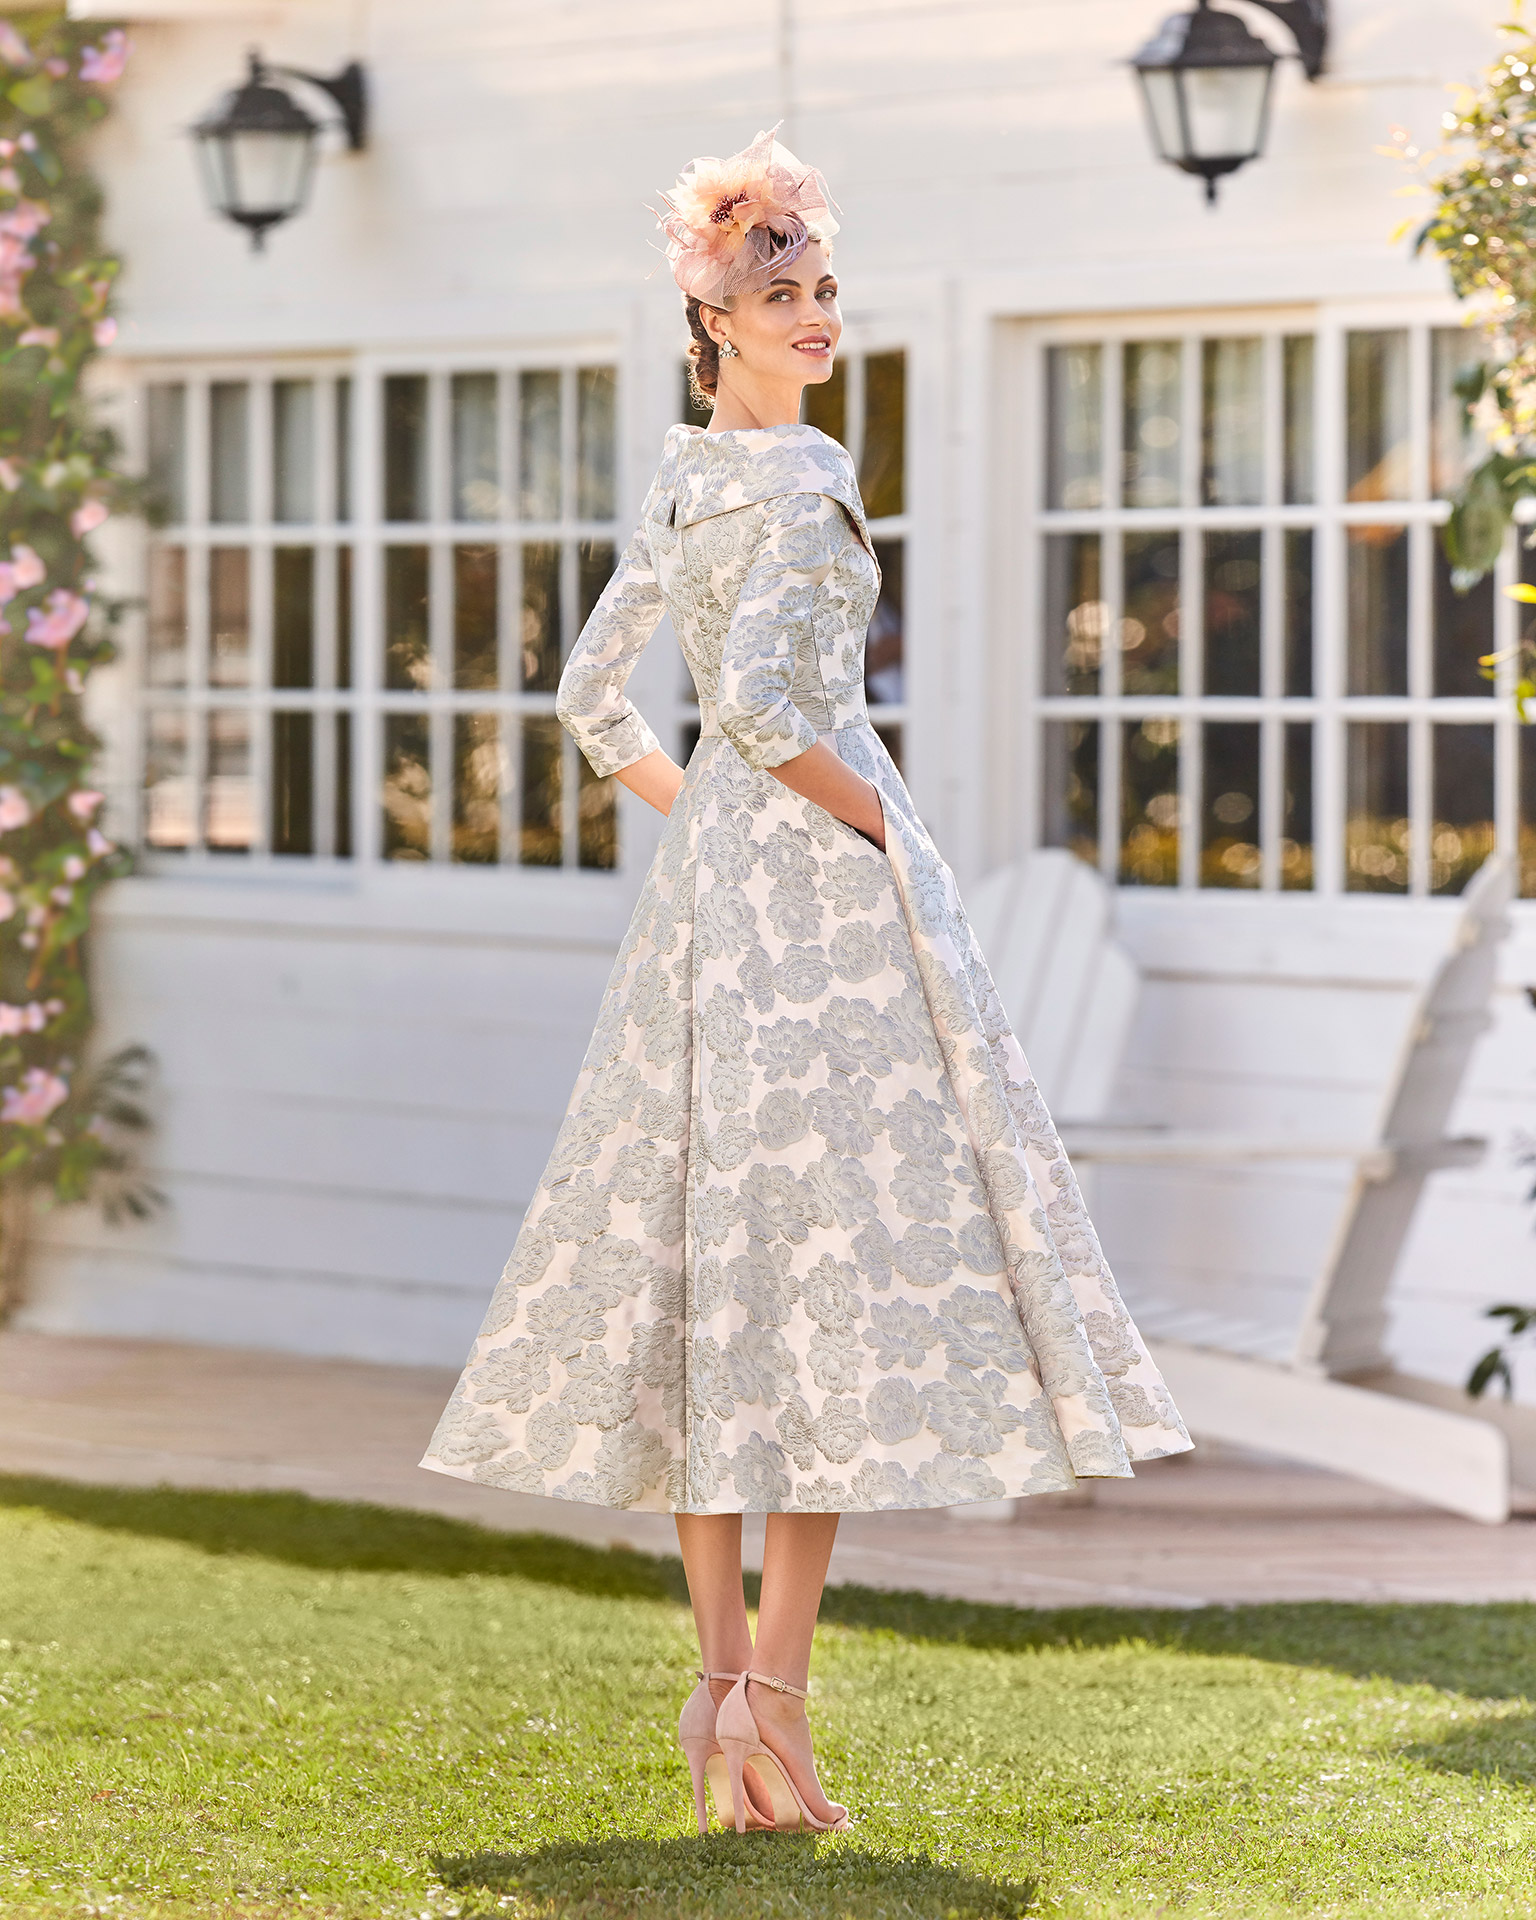 Brocade cocktail dress. Off-the-shoulder crossover neckline with three-quarter sleeves. 2021 COUTURE CLUB Collection.